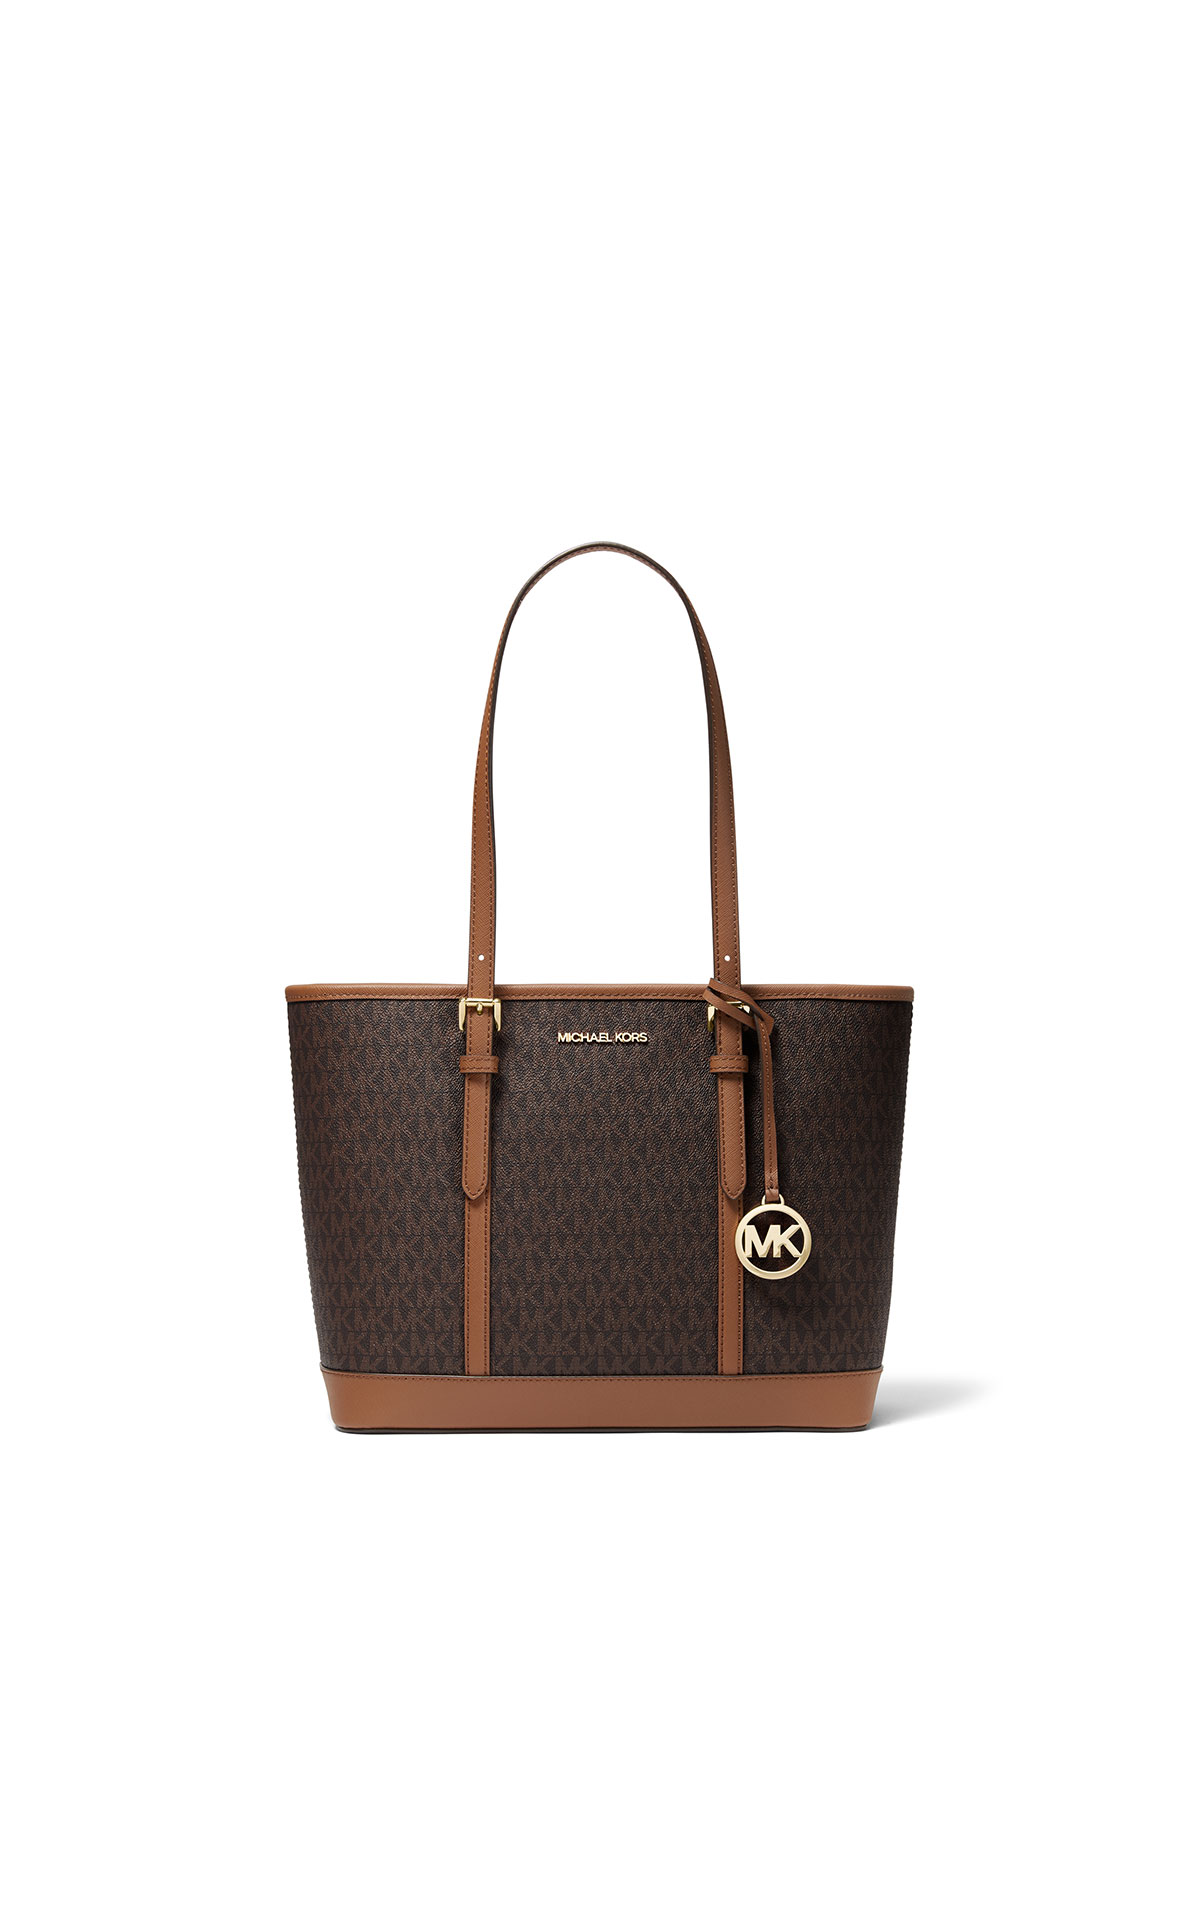 Michael Kors jet set small tz shoulder tote at the Bicester Village Shopping Collection